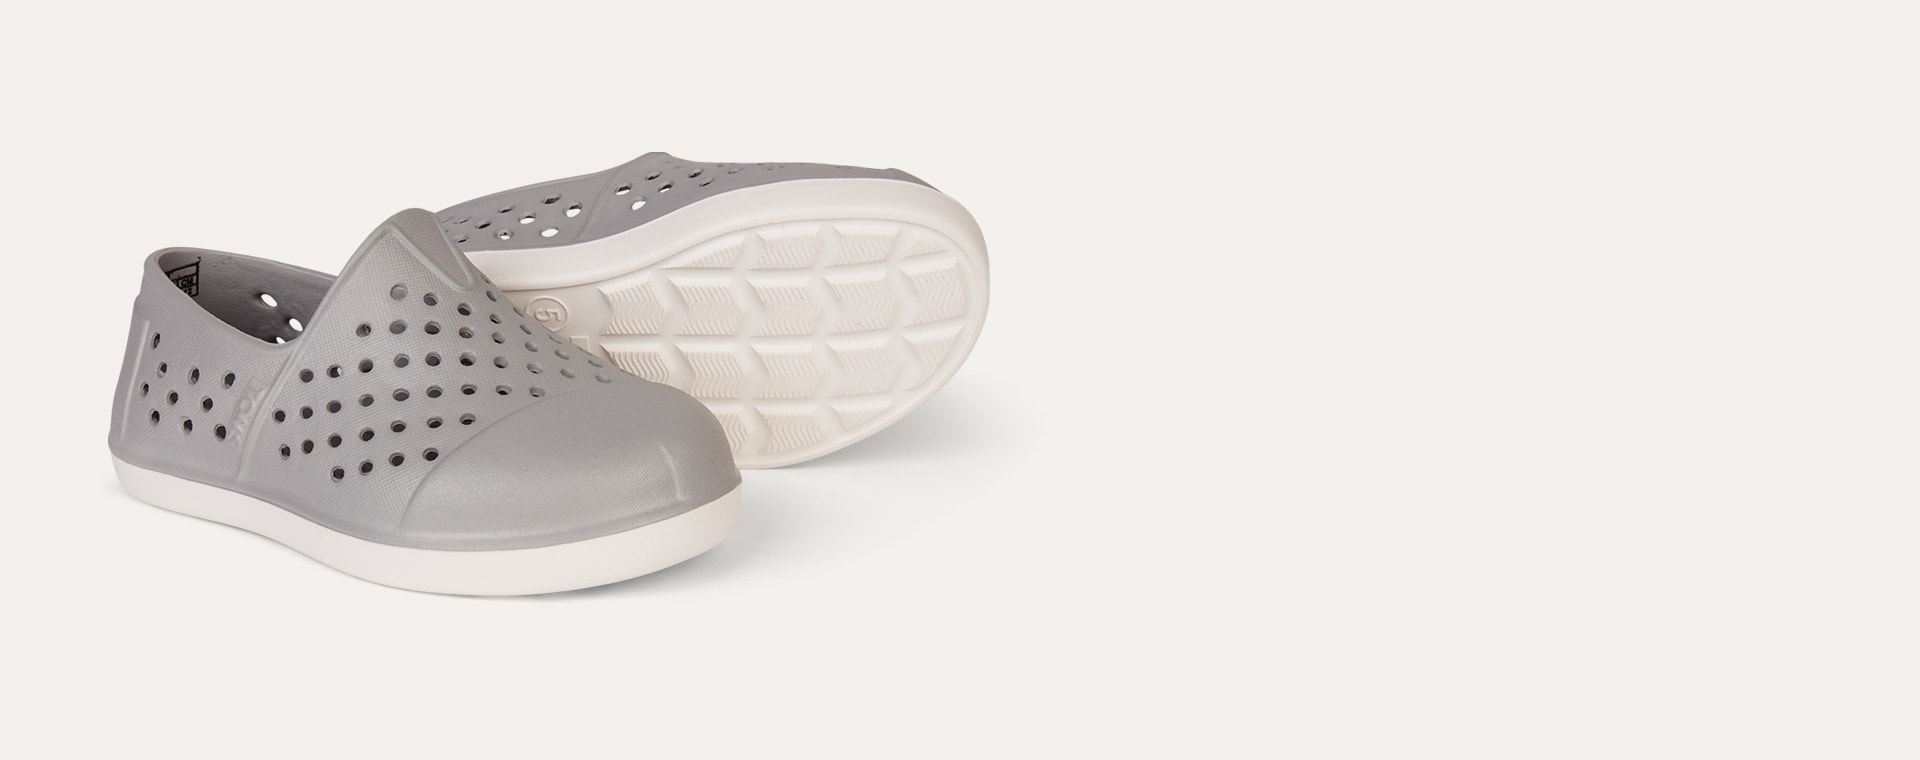 Grey TOMS Romper Slip On Shoe